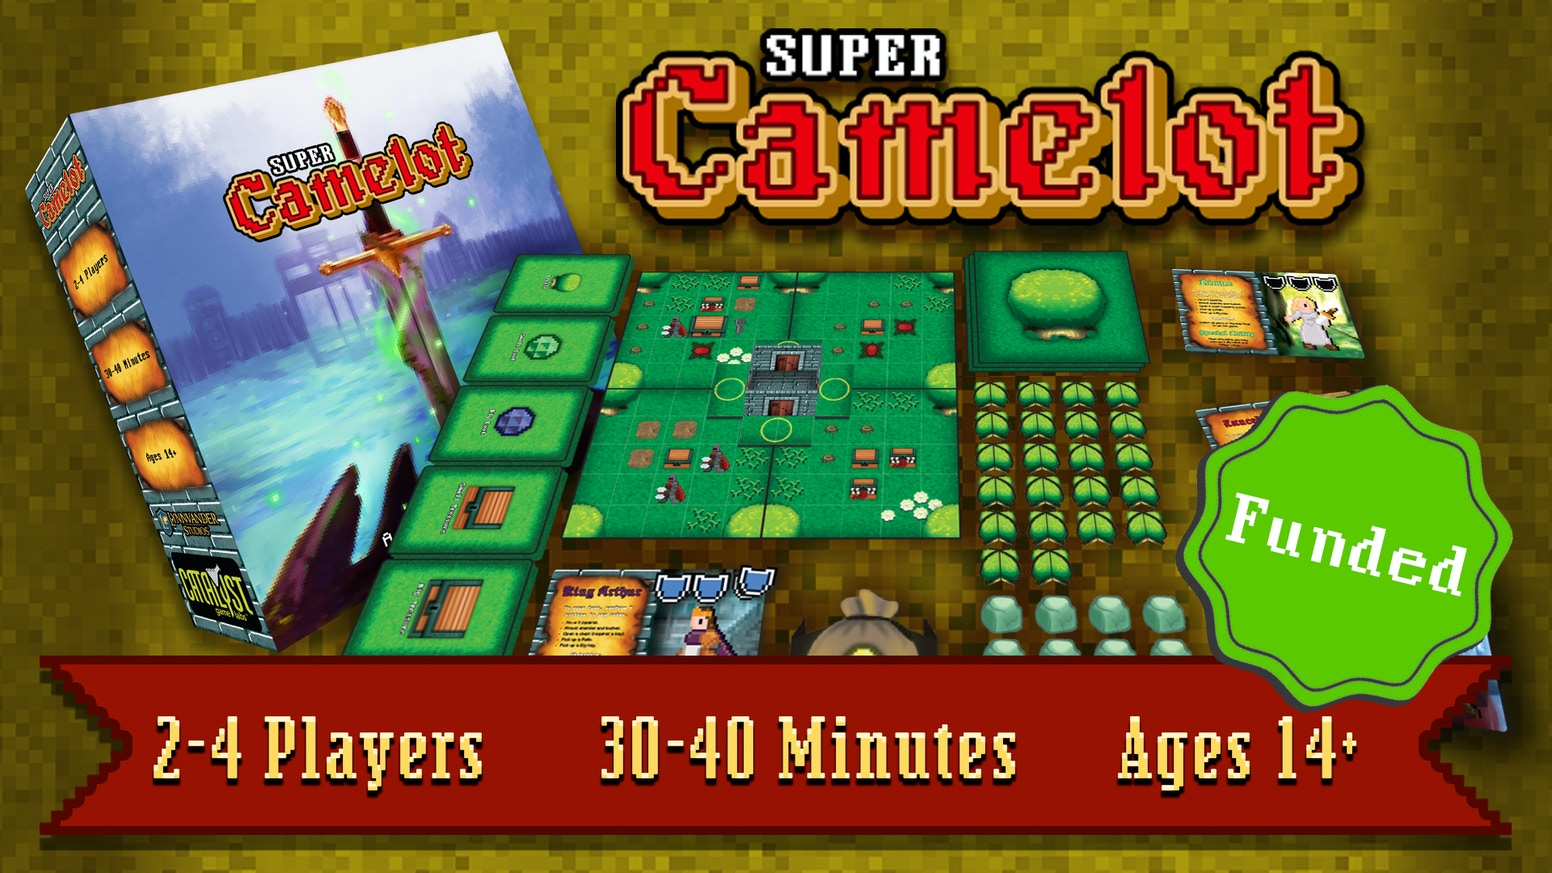 Super Camelot The 16 Bit Adventure Board Game By Catalyst Games Mosquito Killer Lamp Control Circuit Processin